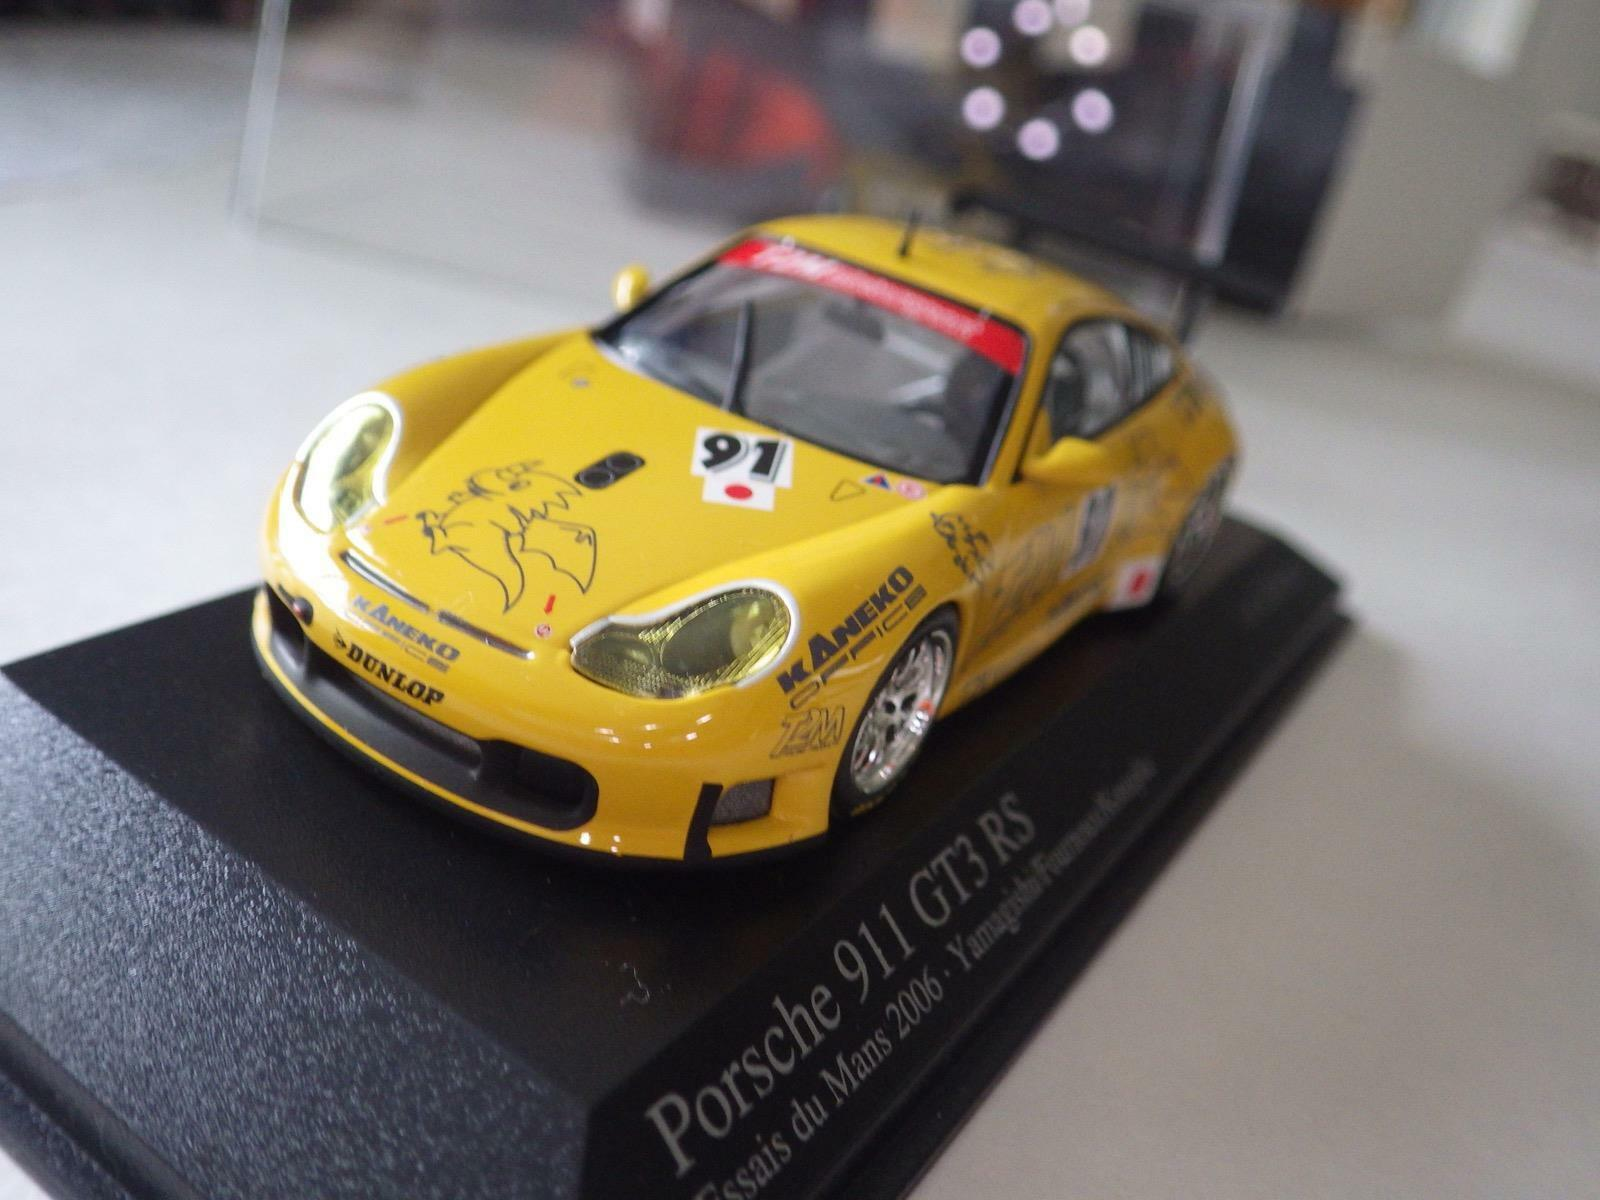 Paul's Model Art giallo Porsche 911 GT3 RS T2M Racing Essais Du Mans 2006 1 43